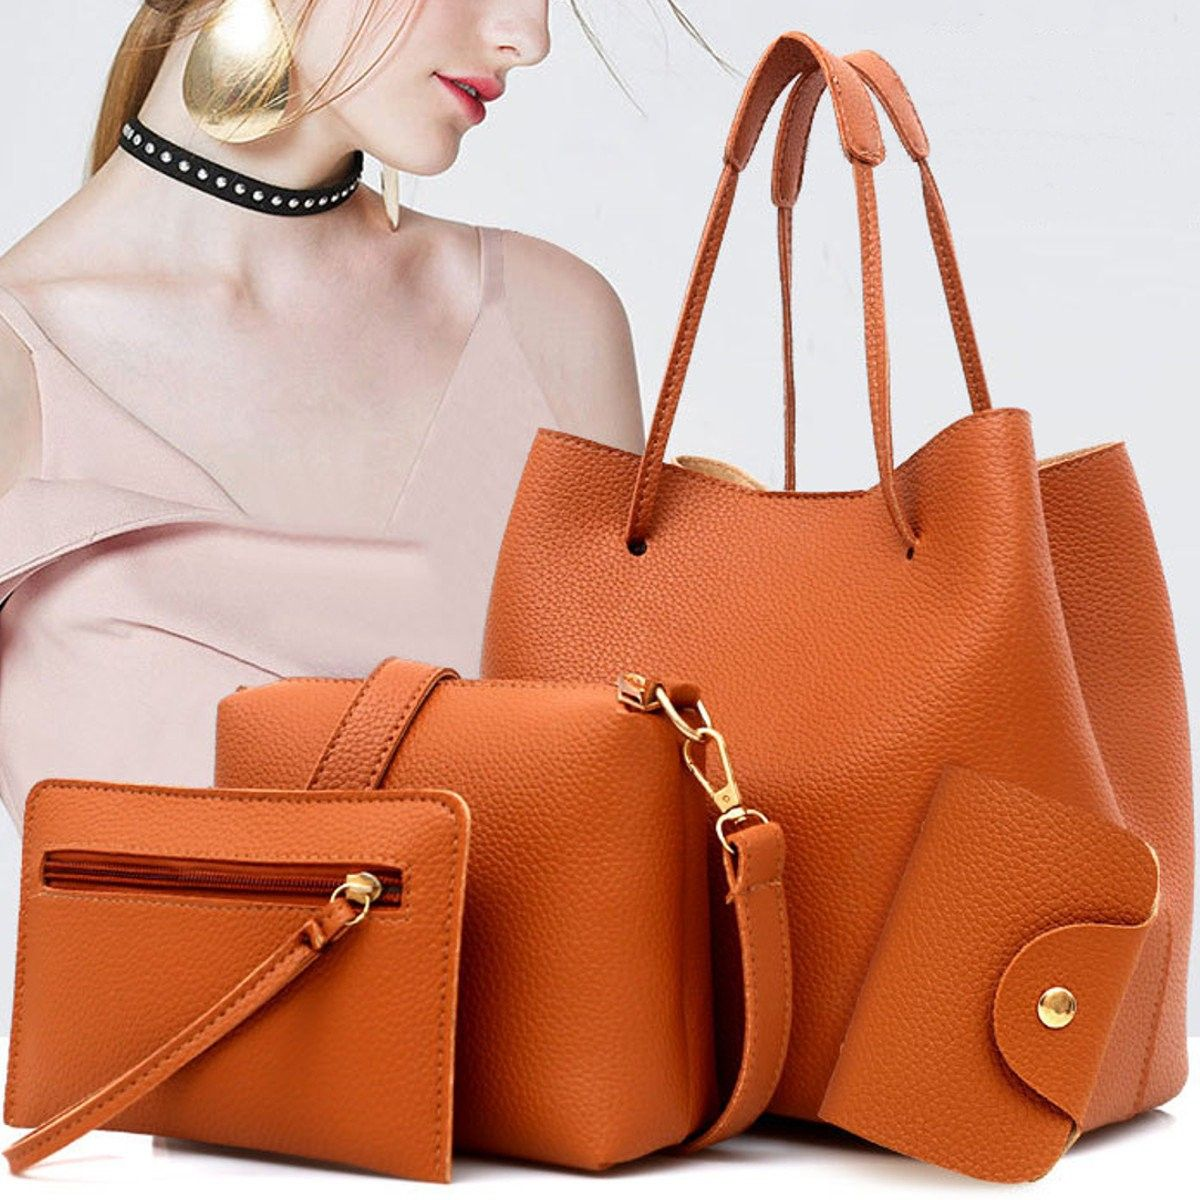 321d9daa24a7 Bagail Women 4 PCS PU Leather Tote Bag Crossbody Bag